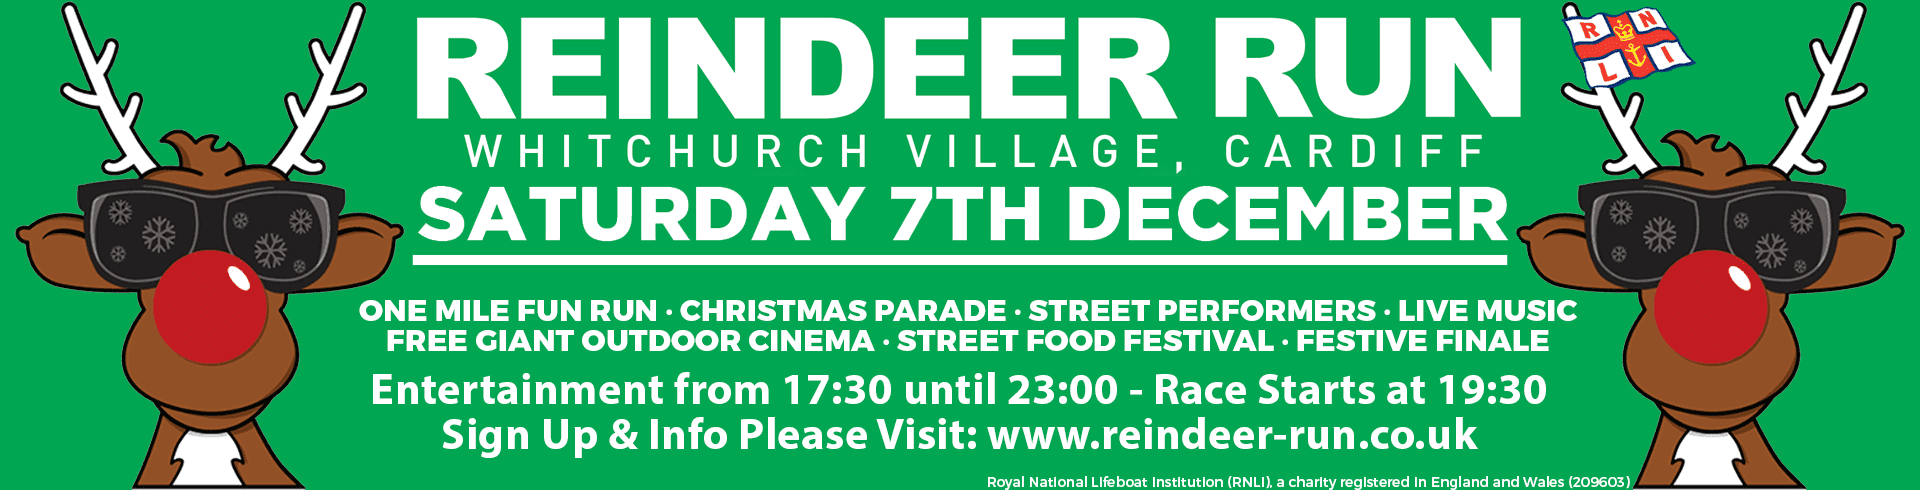 Whitchurch Reindeer Run 2019